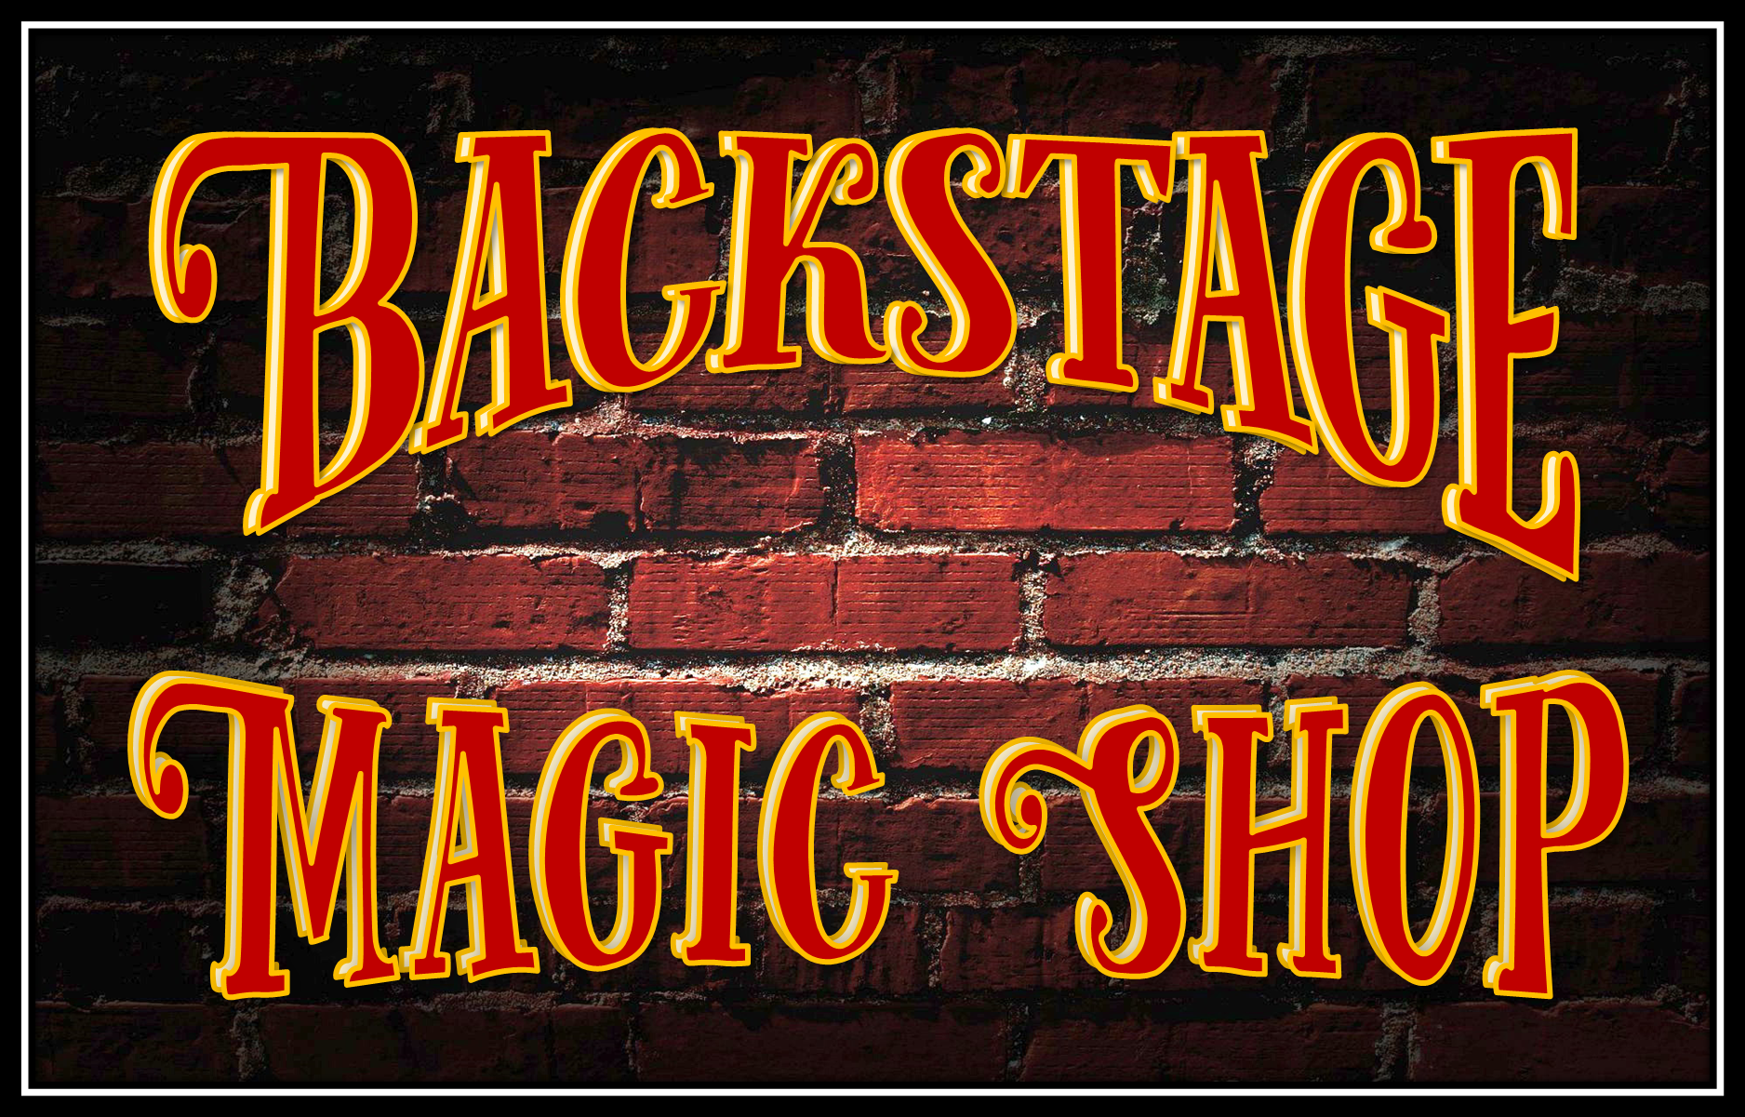 backstage magic shop sign.png